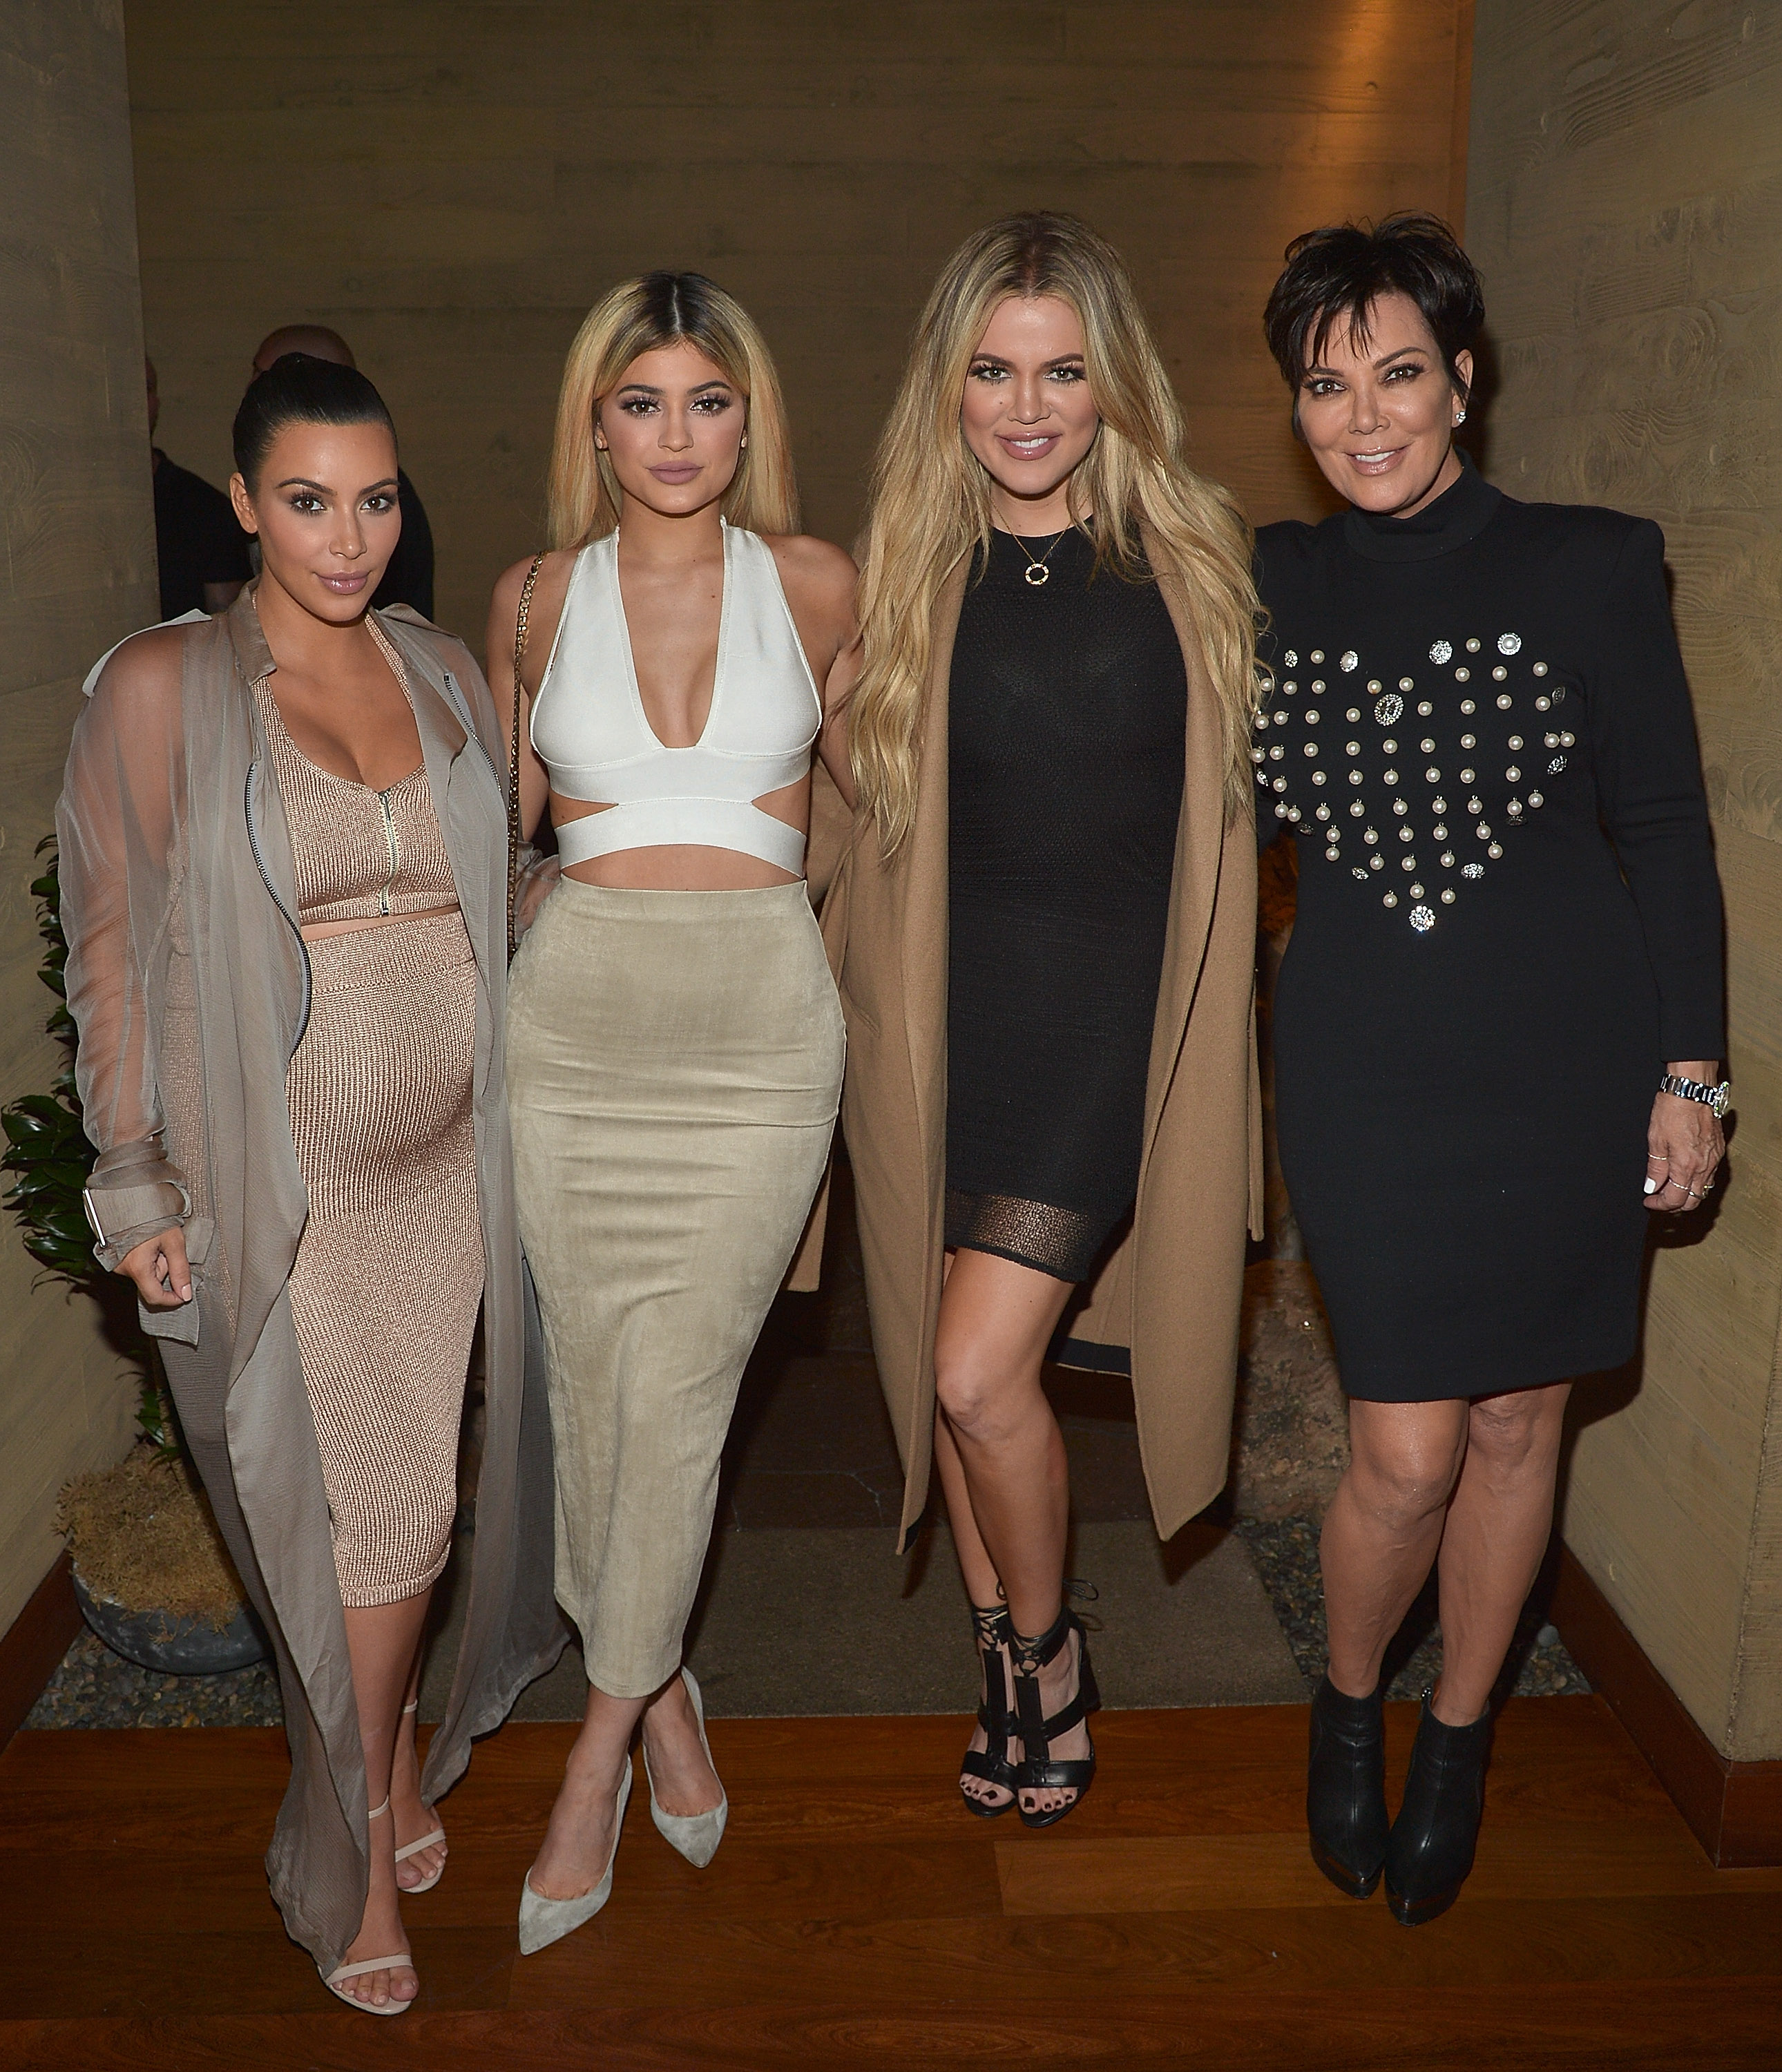 b37243c8e707 The Pregnant Kardashians Sisters Are Already Competing Over Money